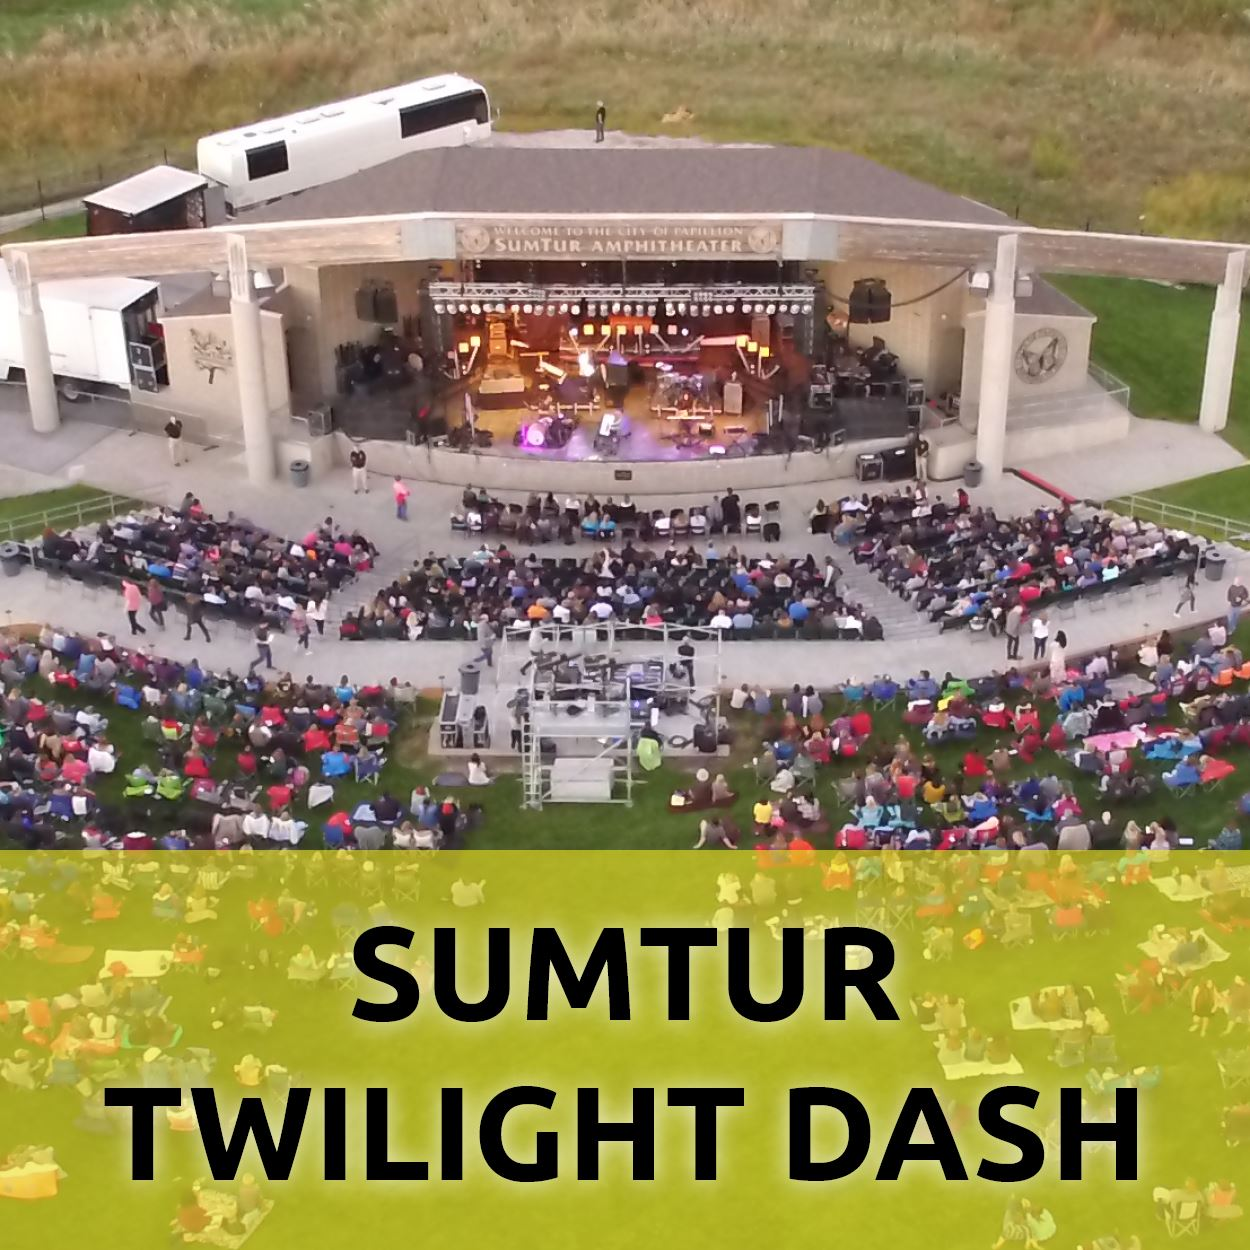 SumTur Twilight Dash